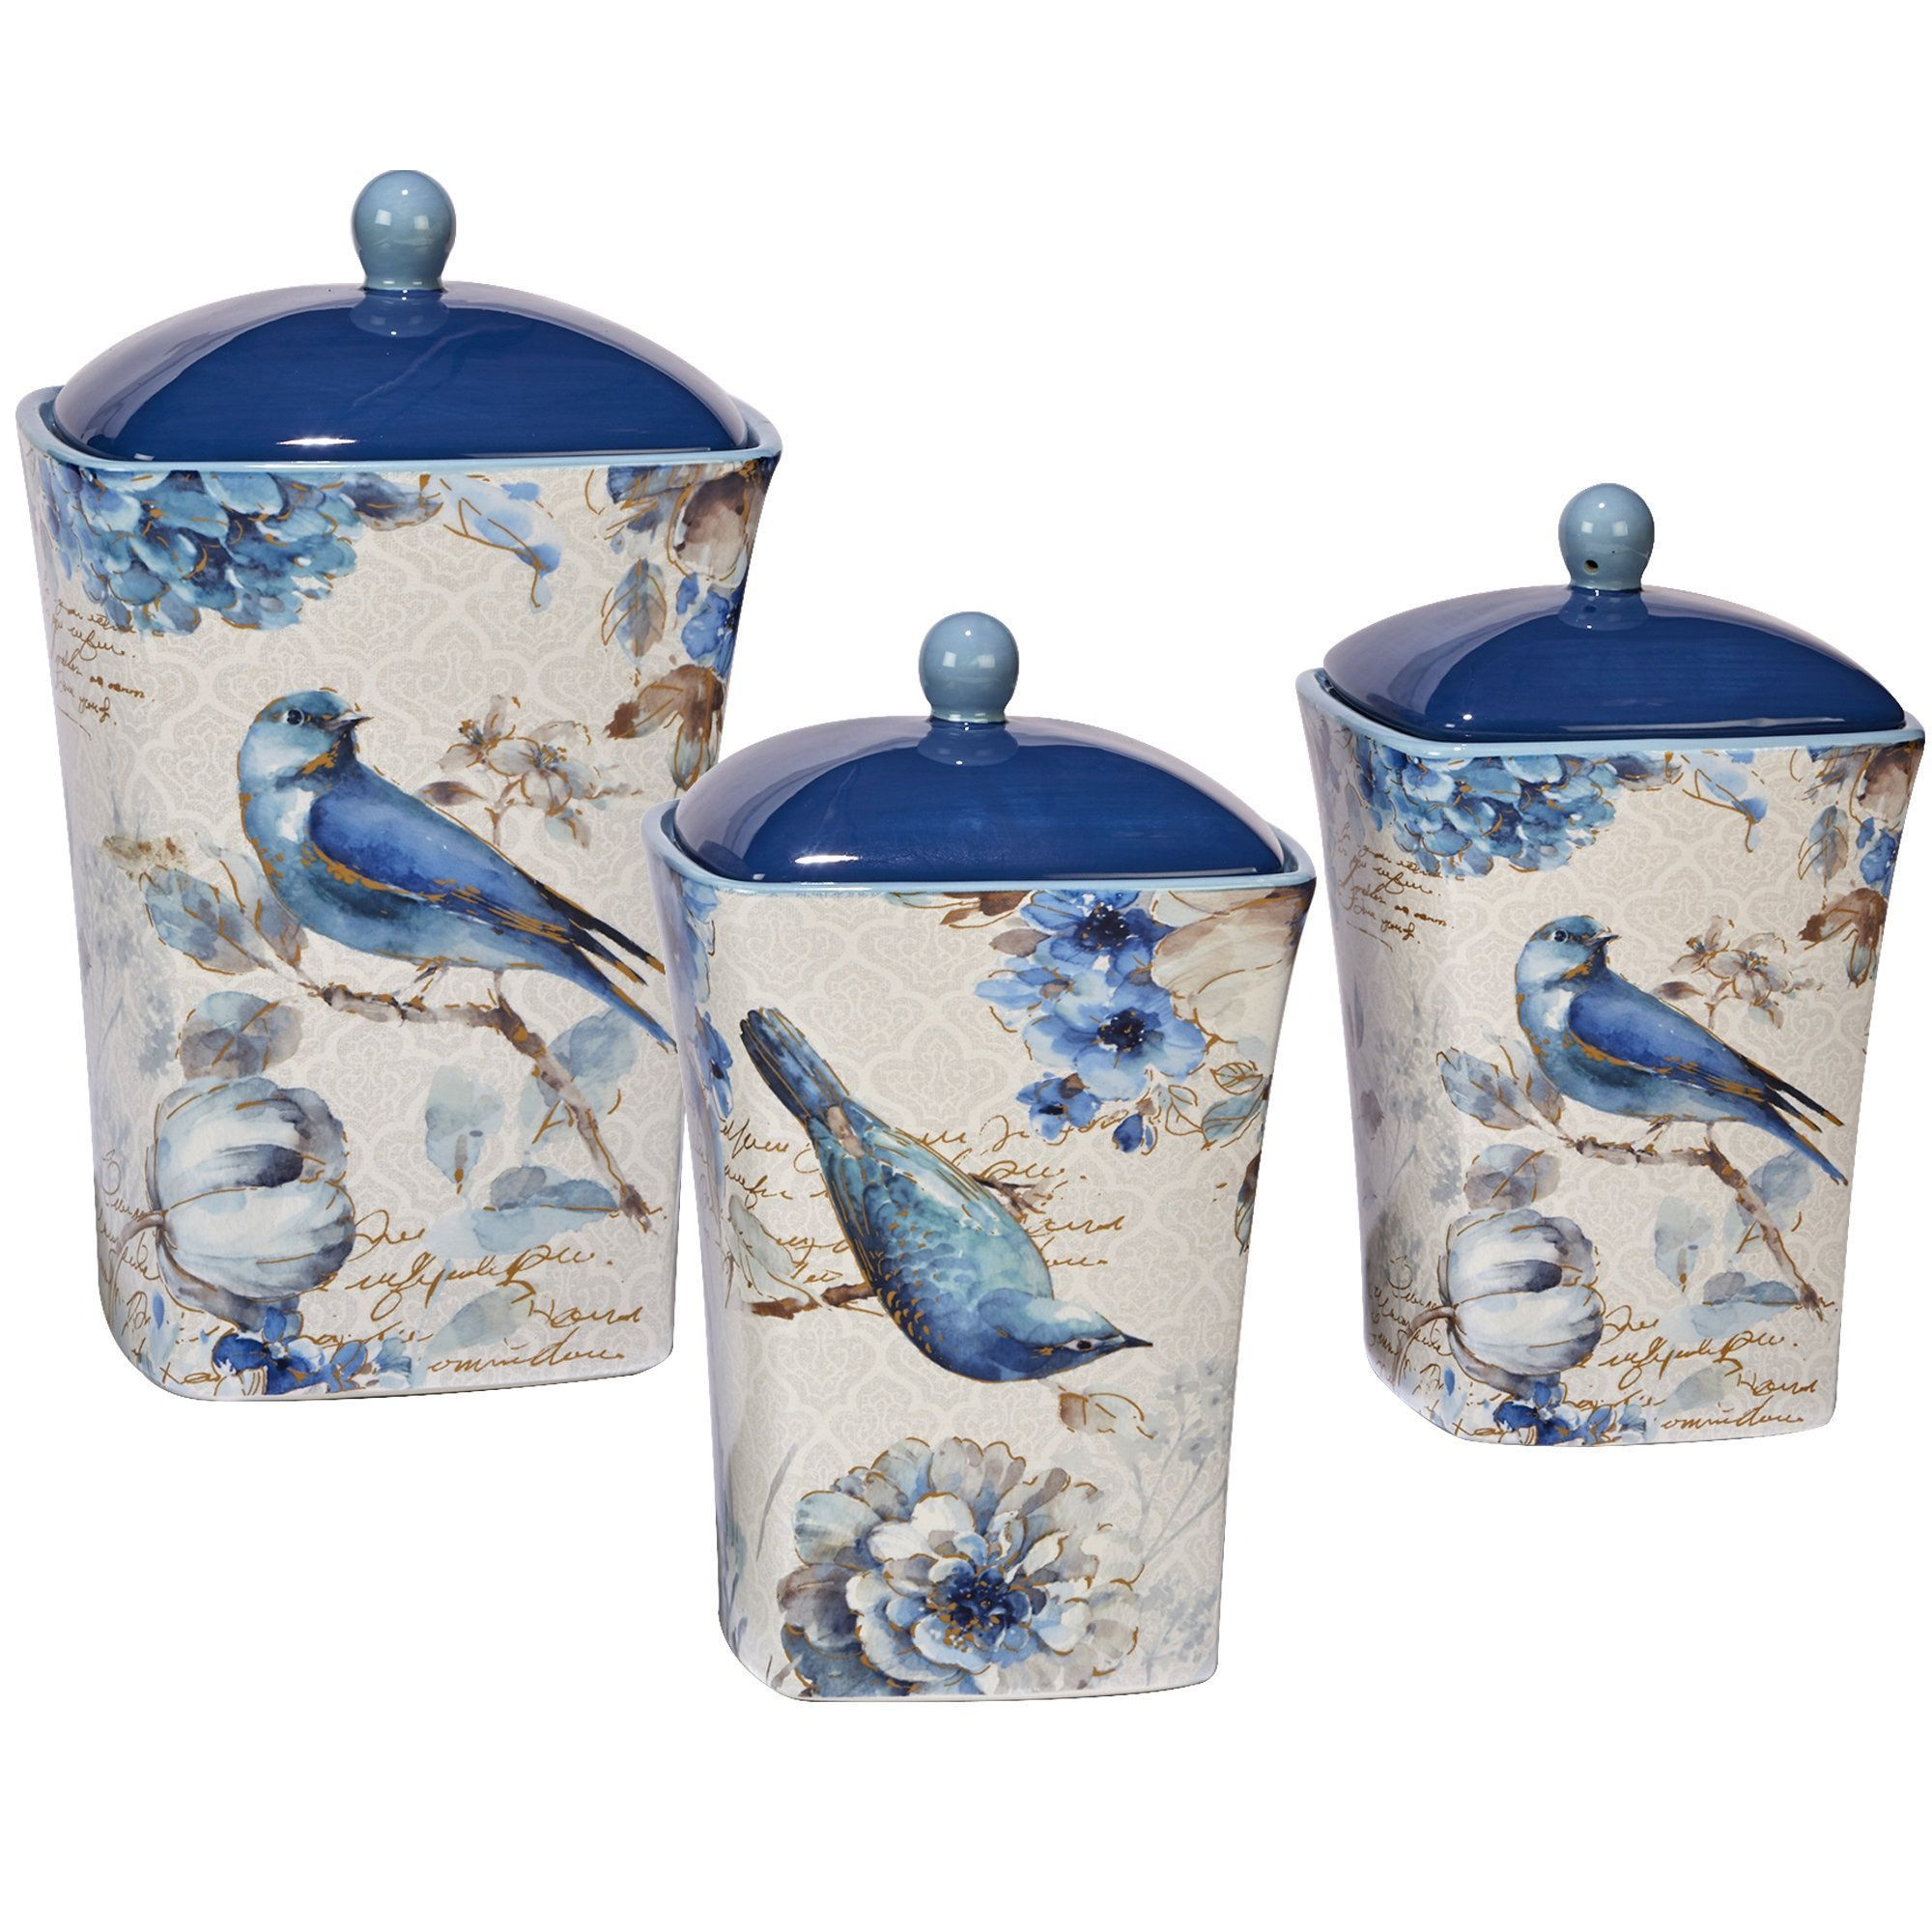 Kitchen Canisters Ceramic Sets: Certified International Indigold Hand-painted Canisters